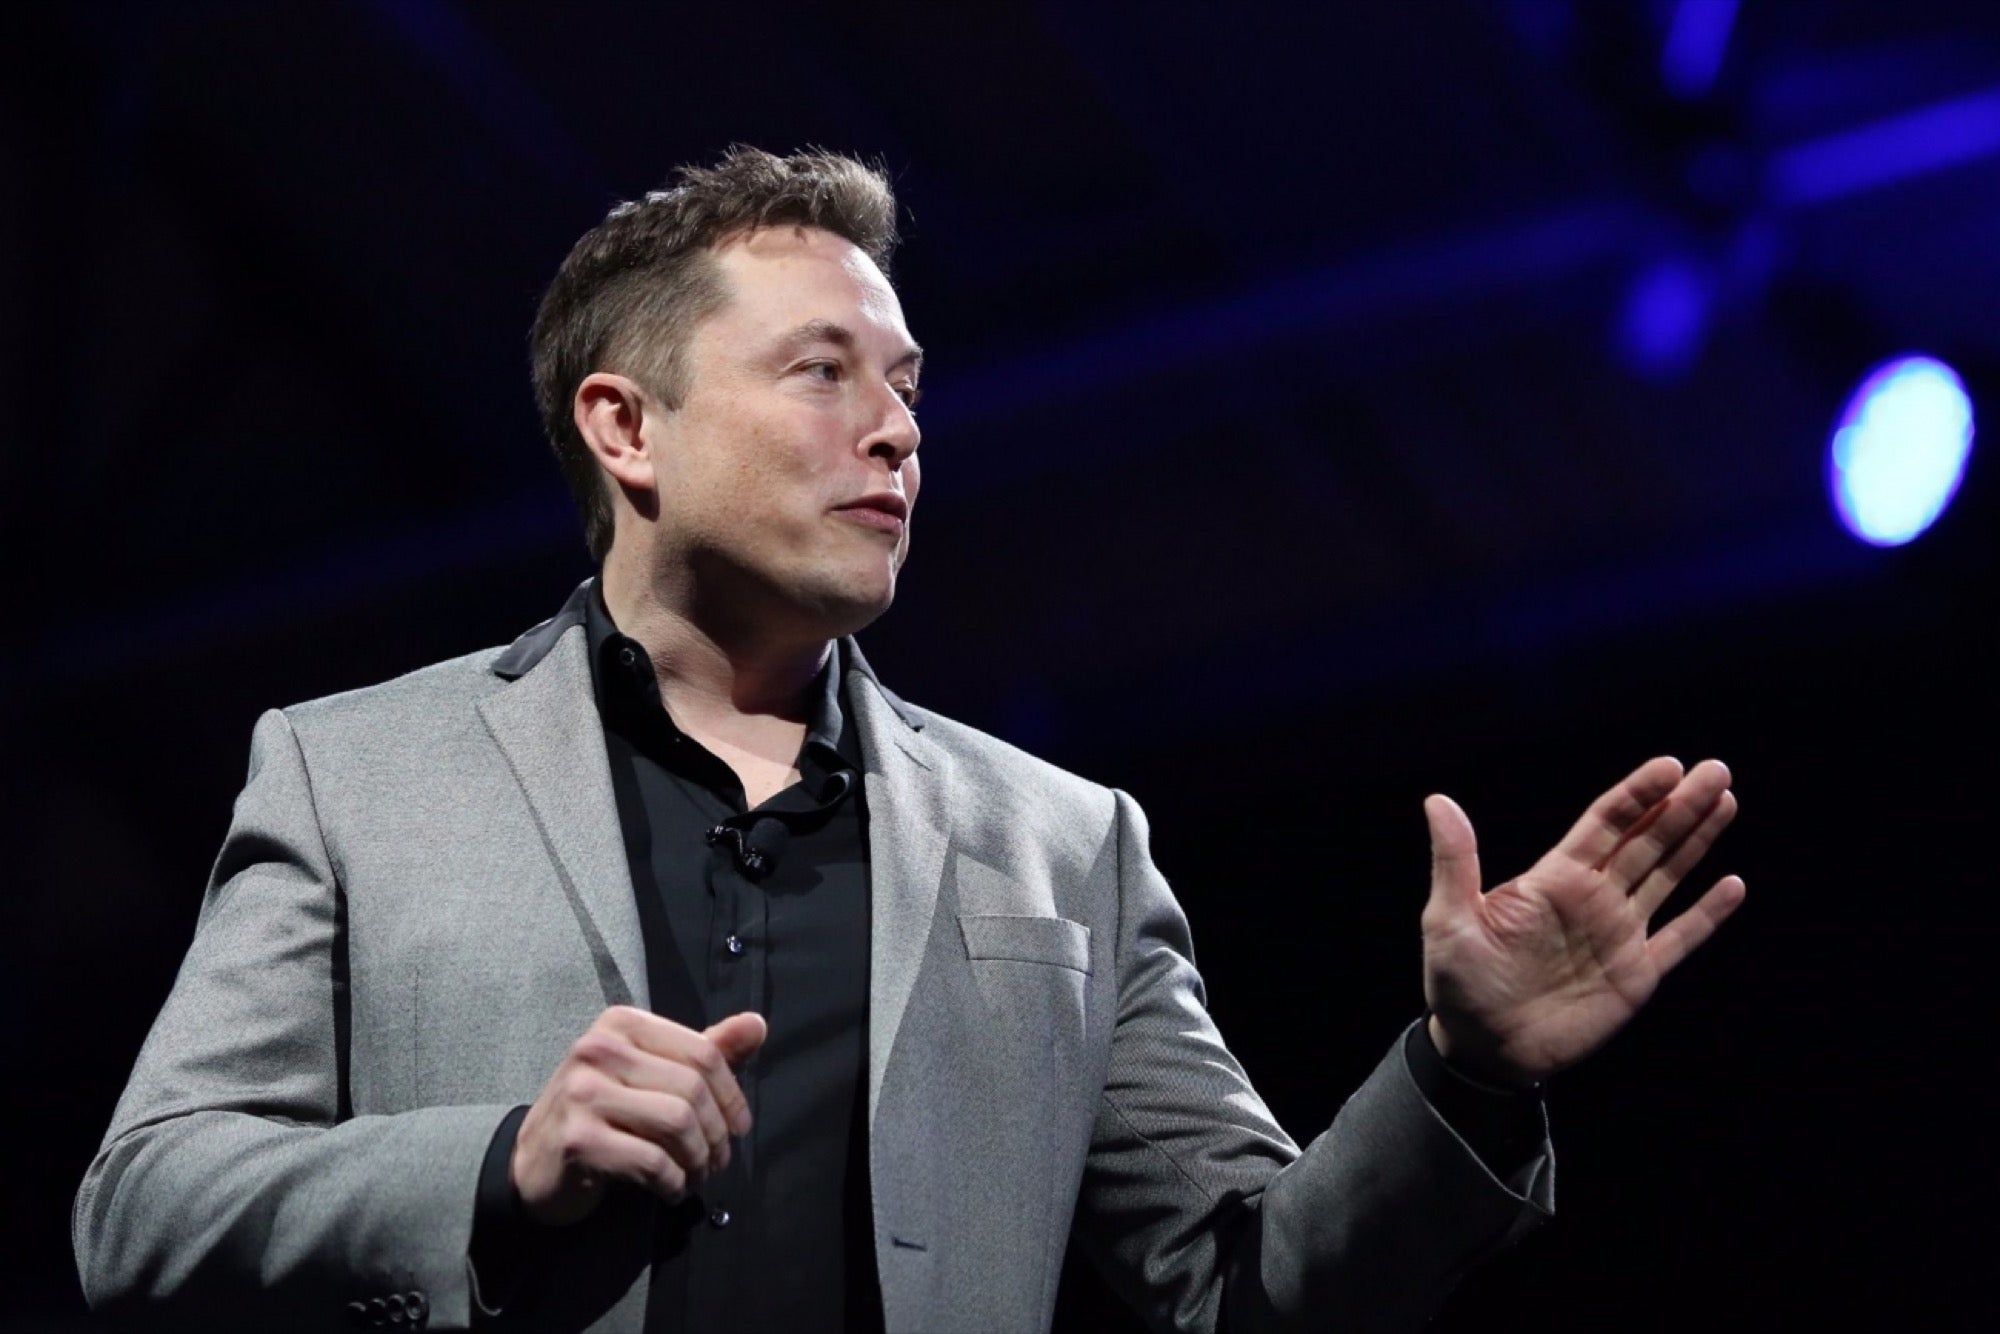 Elon Musk Received the Highest CEO Compensation Package Ever, and 27 Other Crazy Things We've Learned About the SpaceX and Tesla CEO